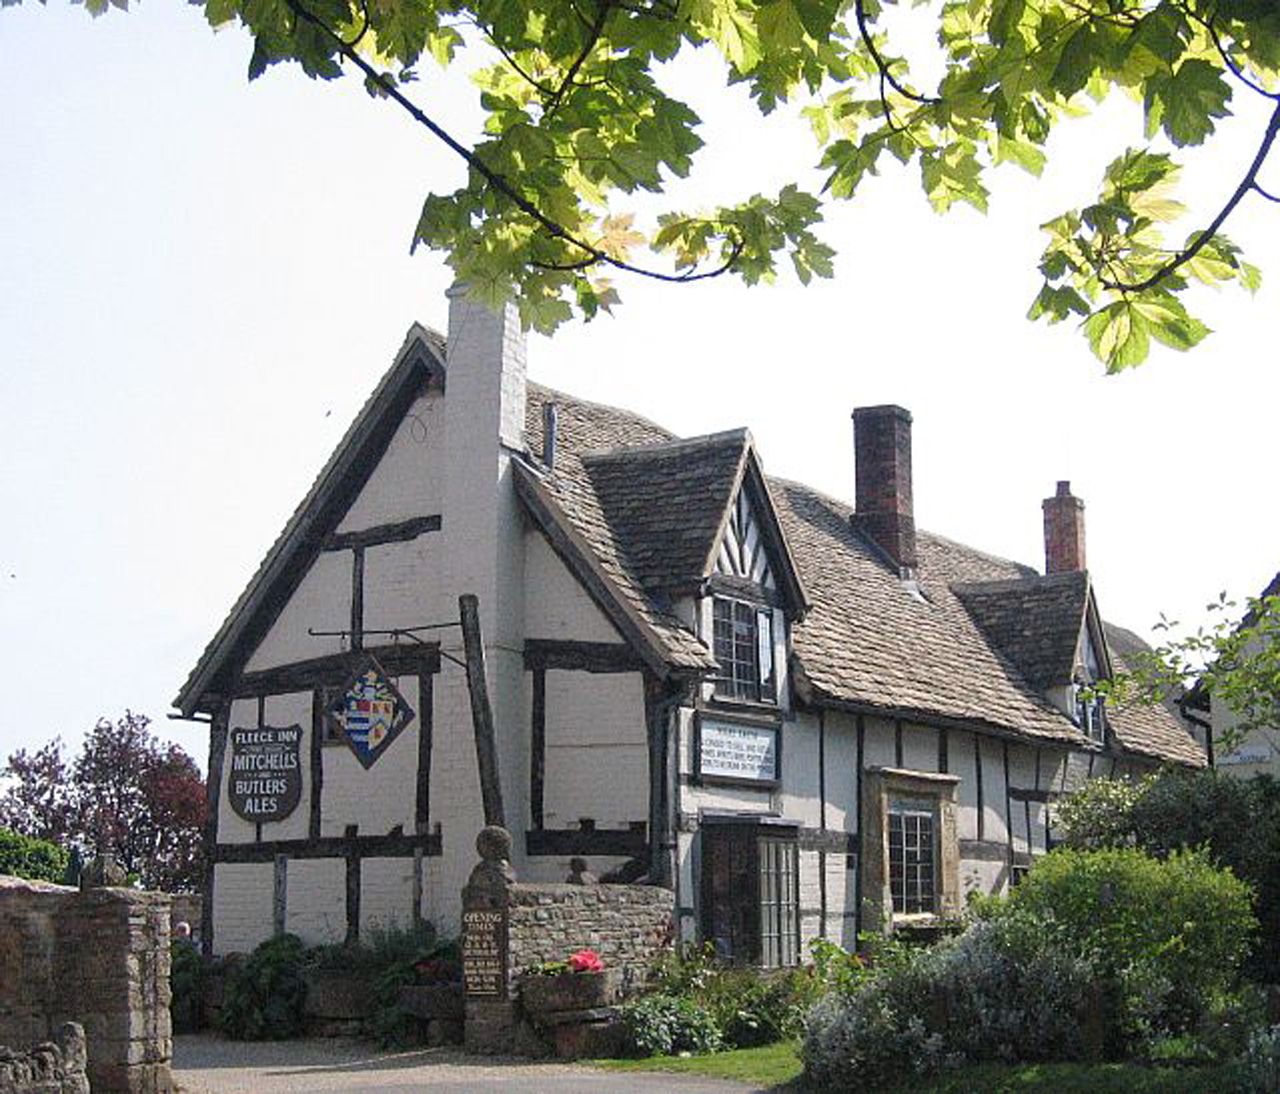 Old Fleece Inn